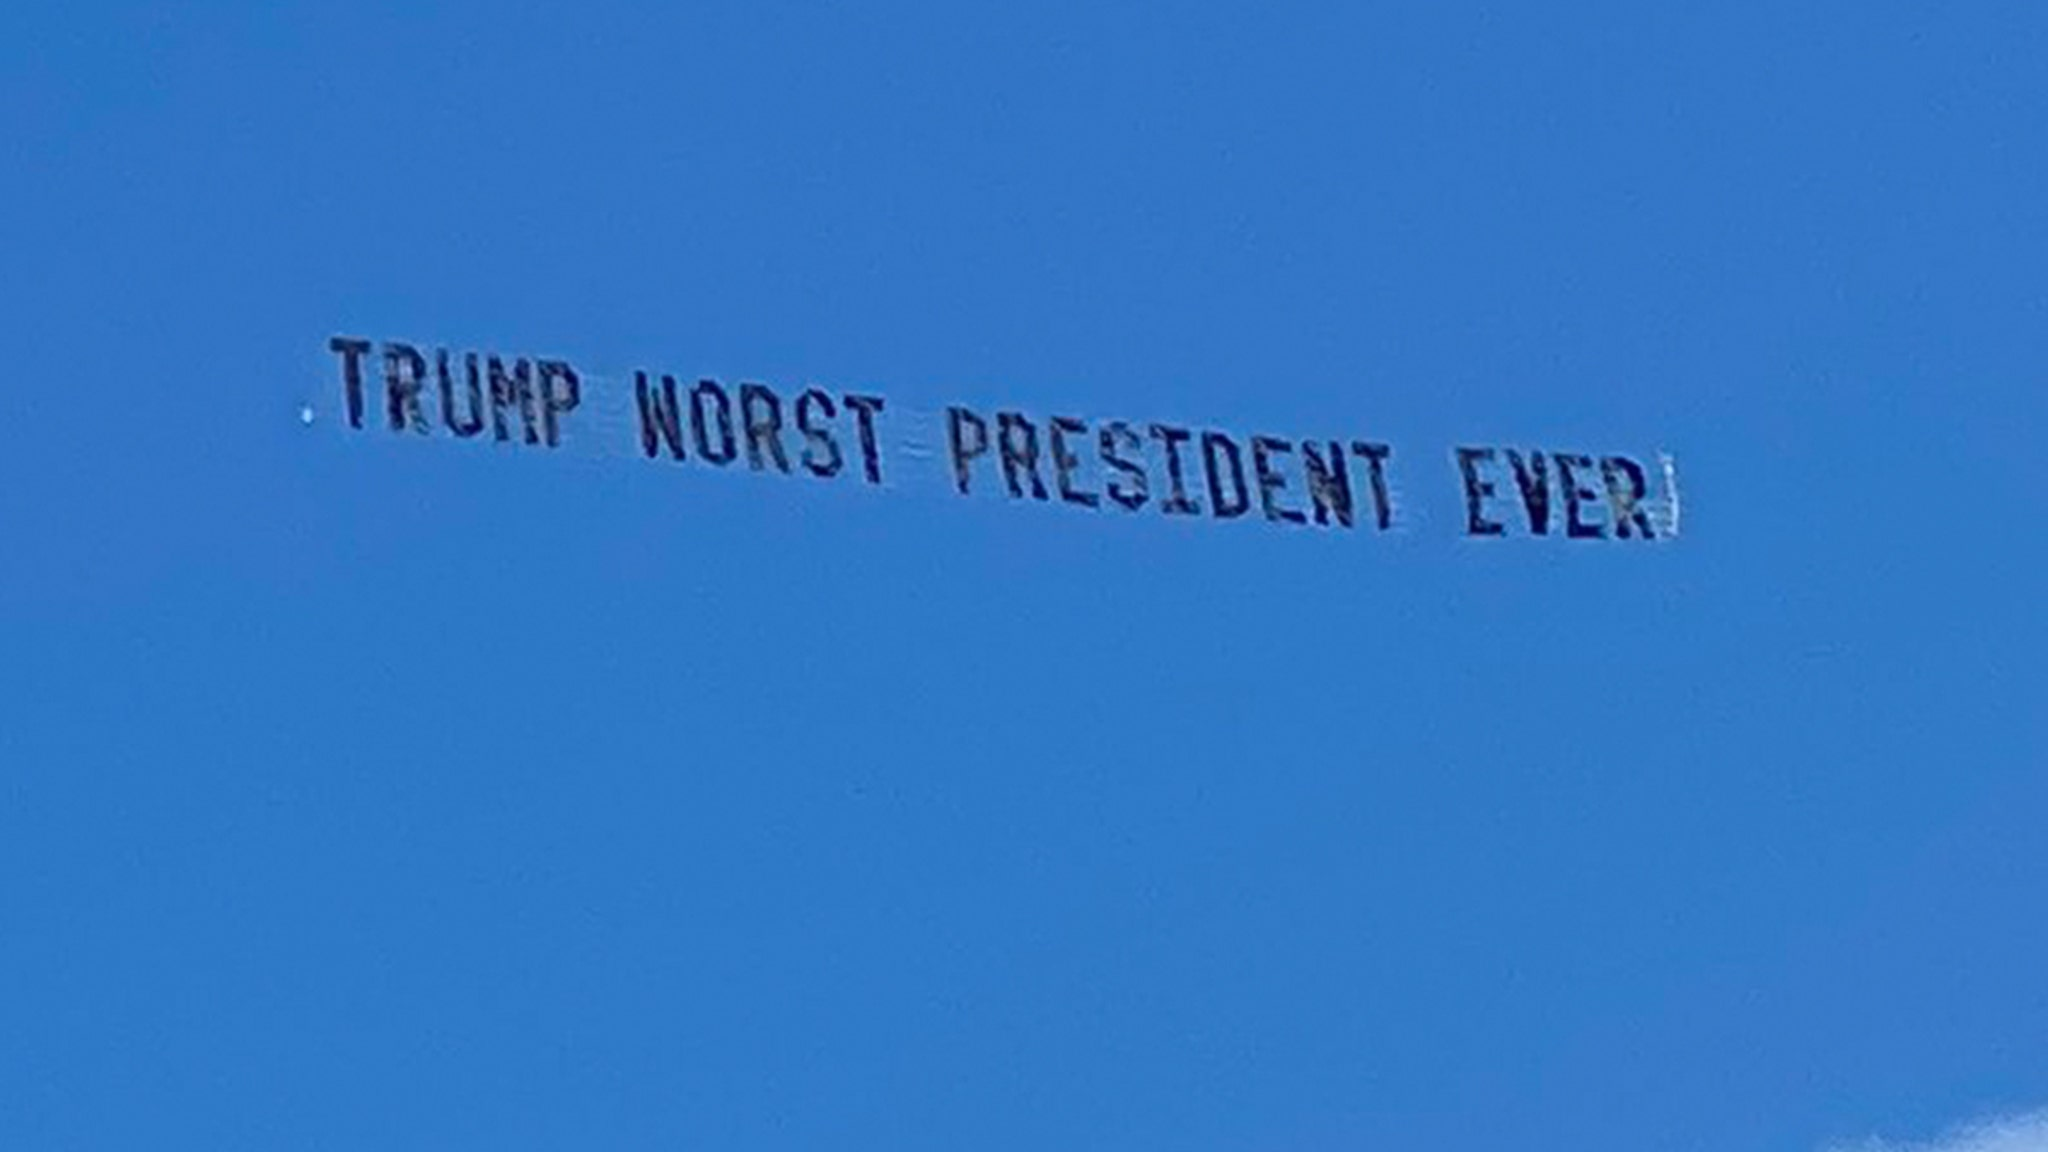 Sky Banner to Trump in Florida 'You Pathetic Loser ...' 'Worst President Ever'!!!